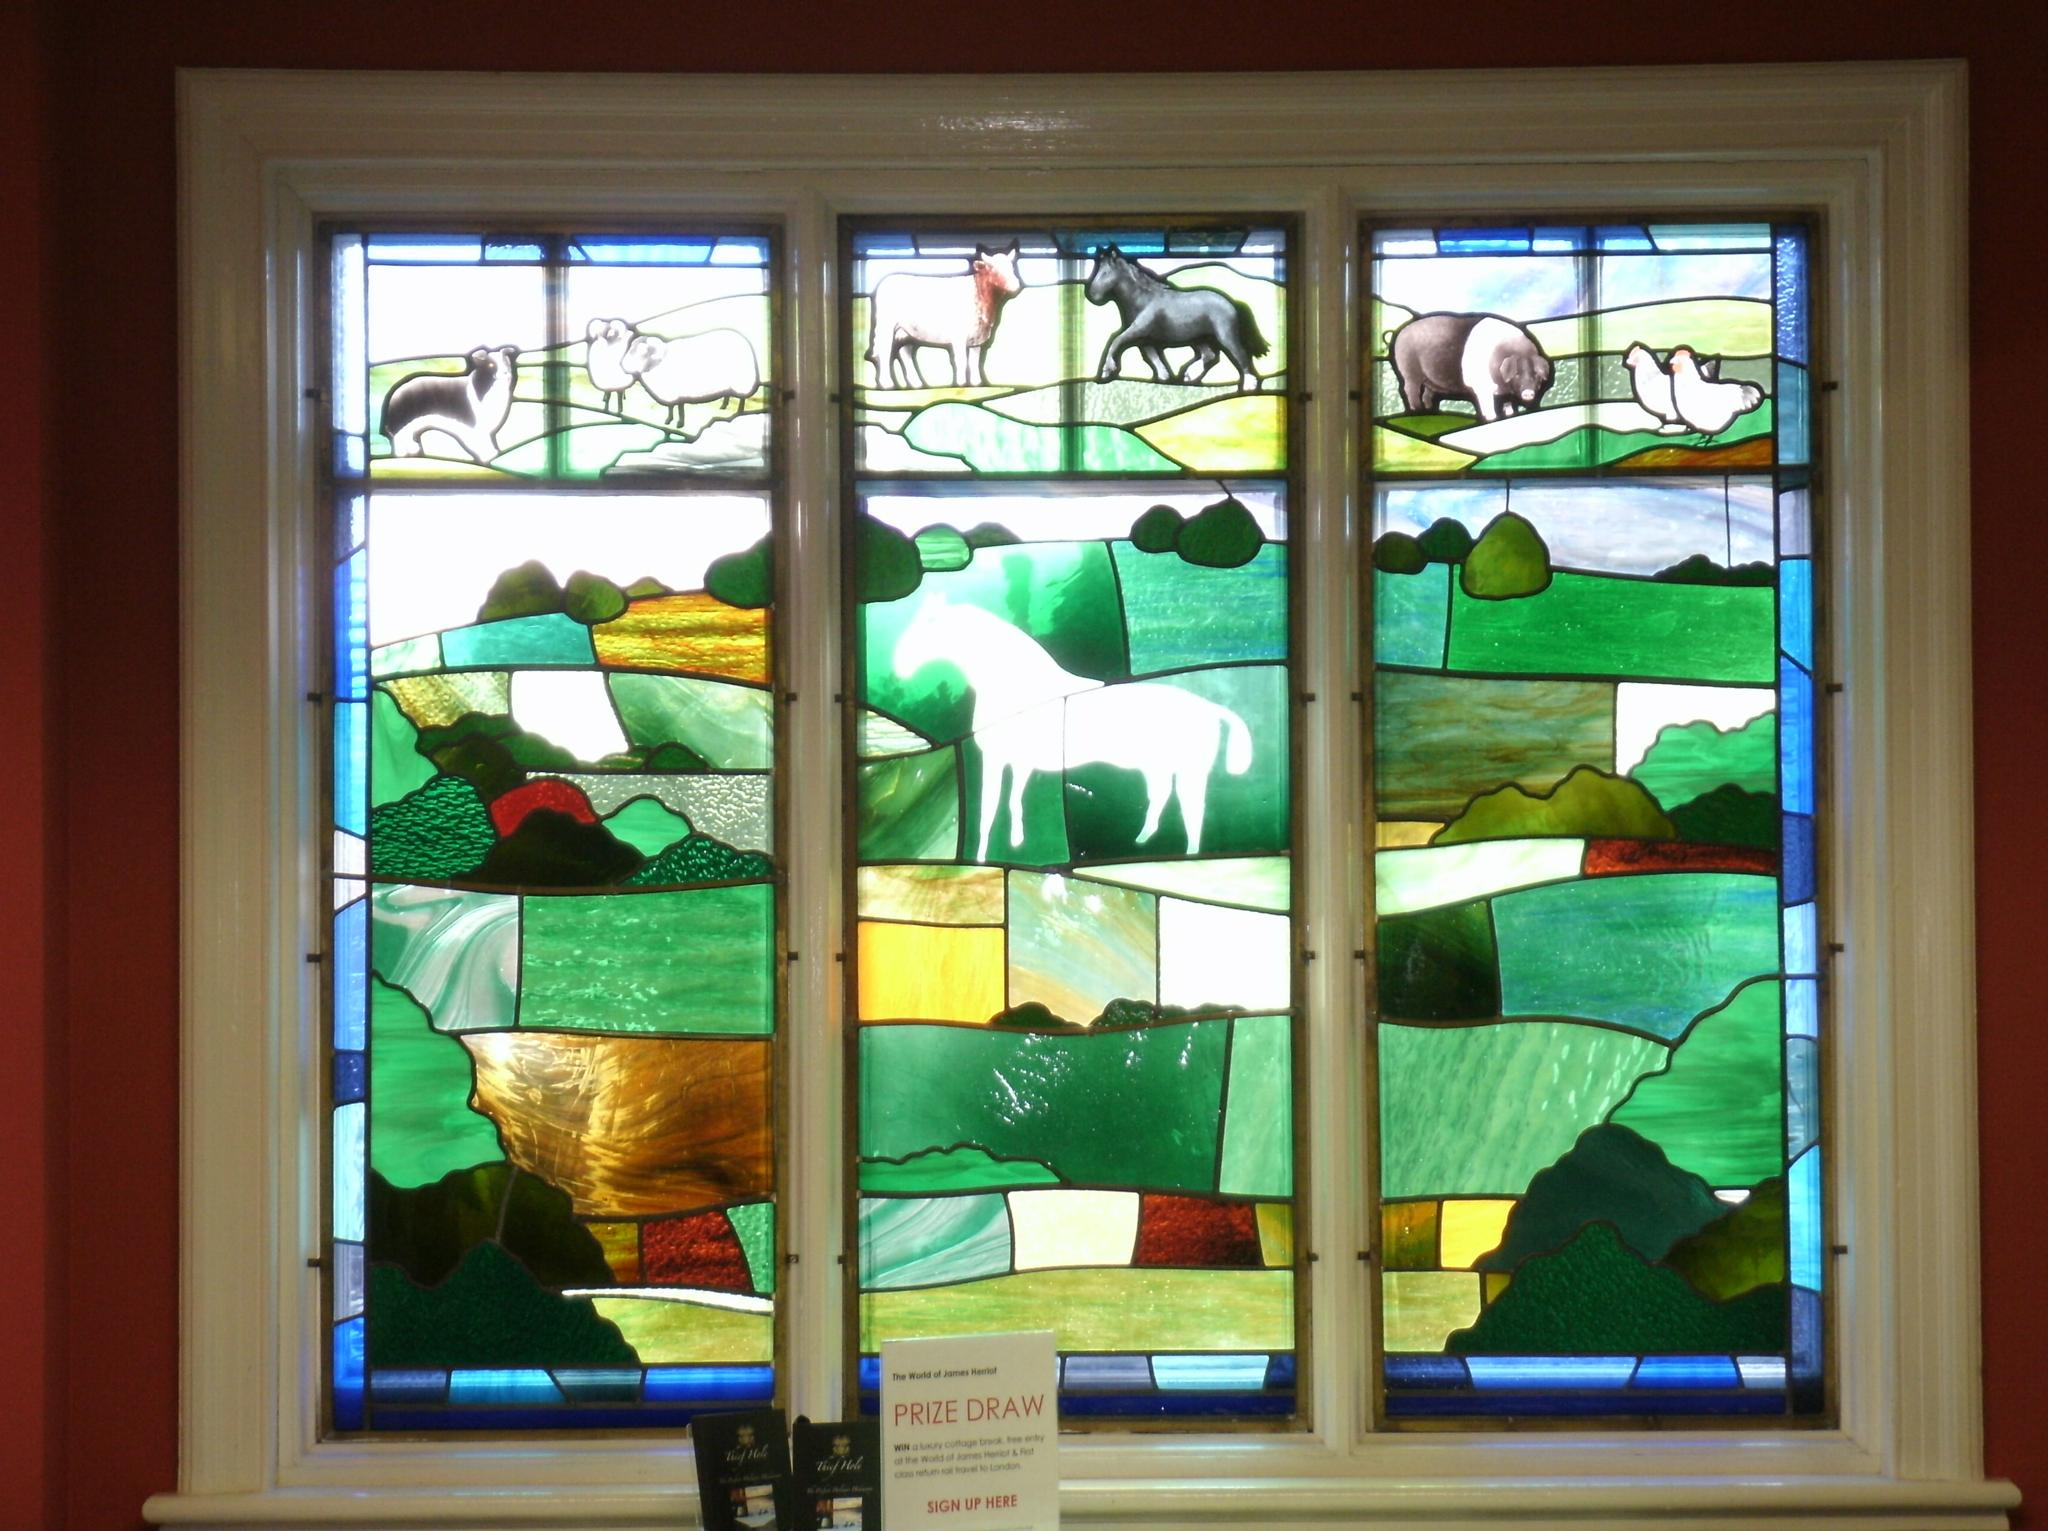 James Herriot vet, stained glass window by joan croll